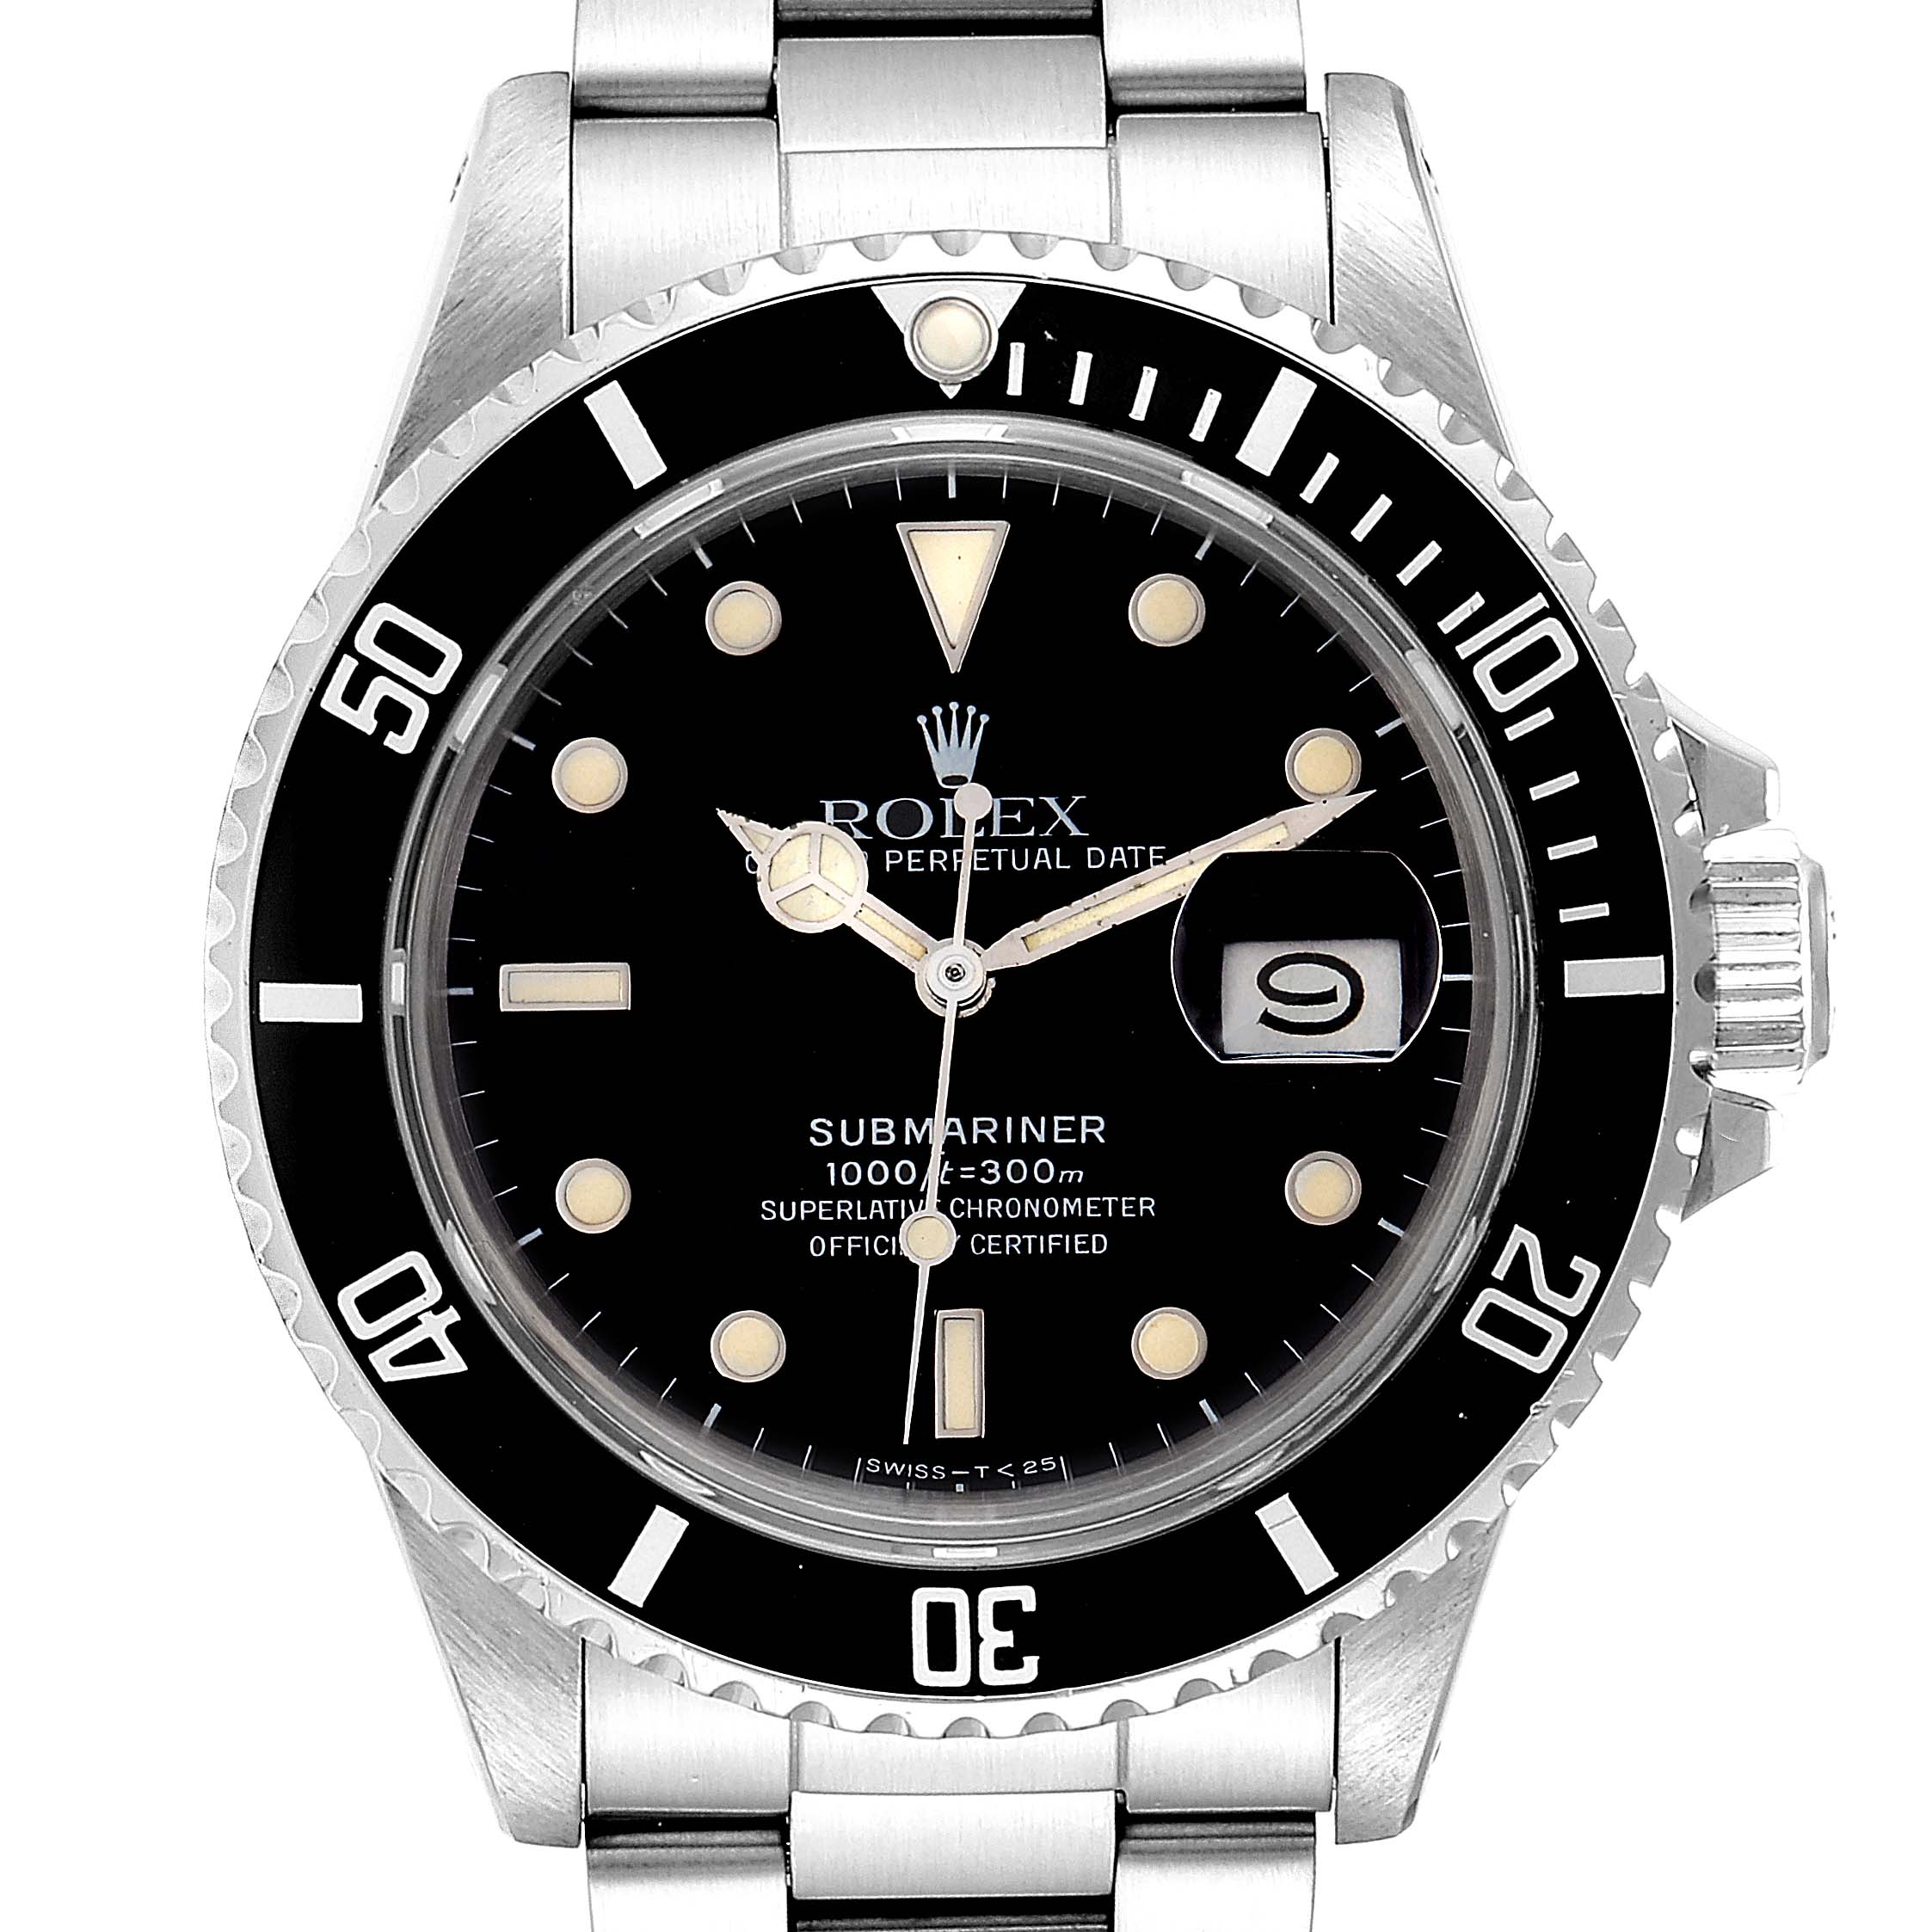 Rolex Submariner Date Steel Mens Vintage Watch 16800 Box SwissWatchExpo